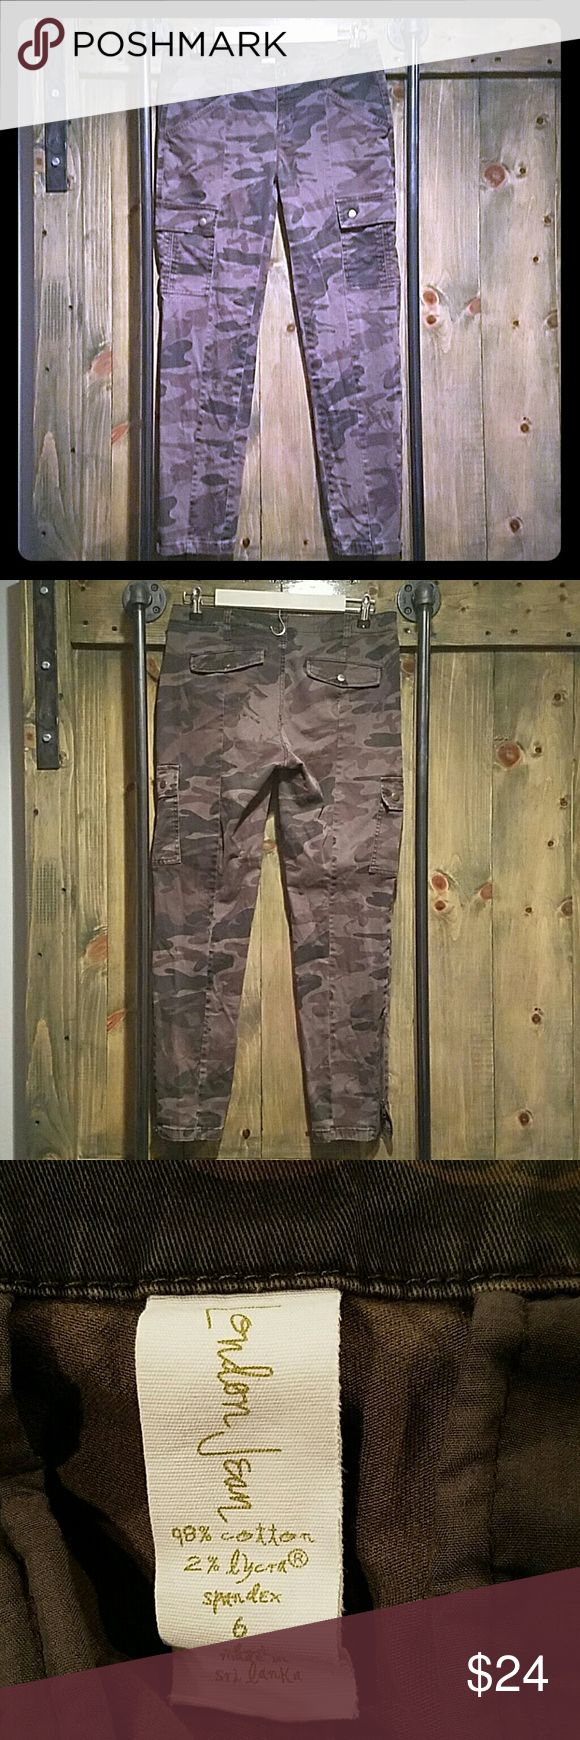 London Jean Camouflage Pants Super cool army green camouflaged  pants. Front, back and side pockets. Zipper at bottom of pant legs, size 6 Short. Not low rise. Considered mid/high rise. Has stretch! Like skinnies. London Jean Pants